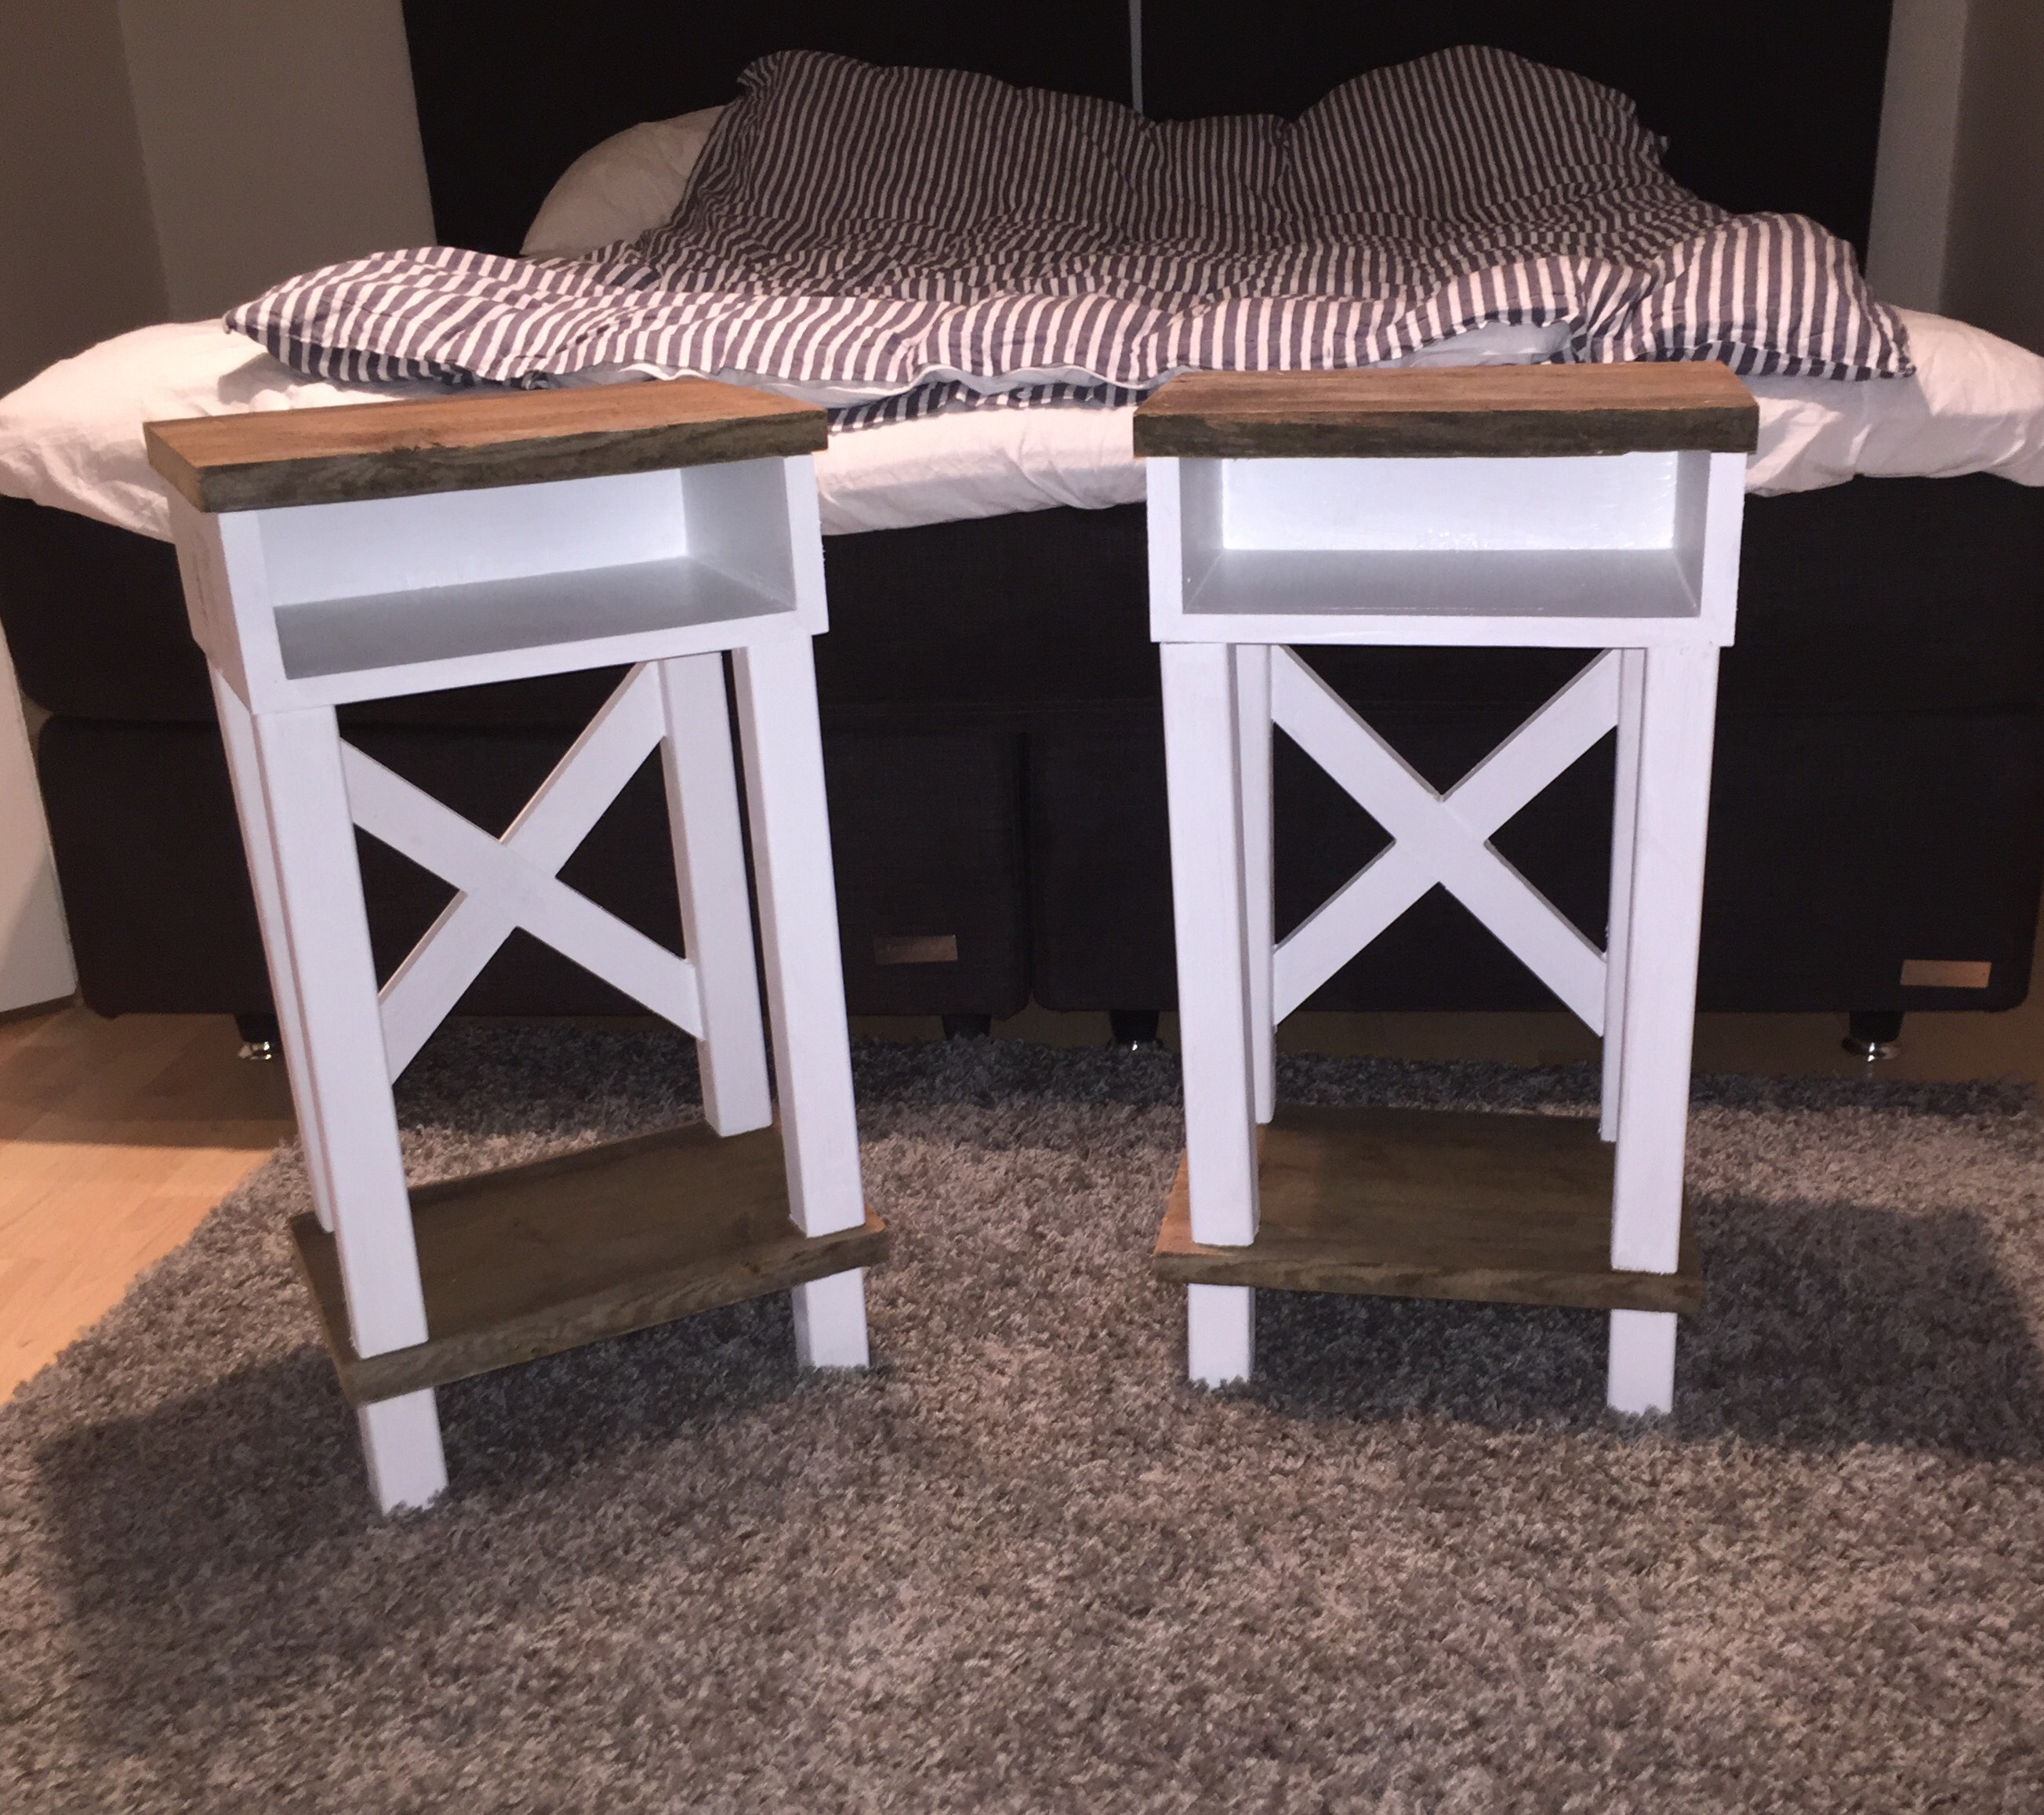 Picture of Bedside Table With Trestle